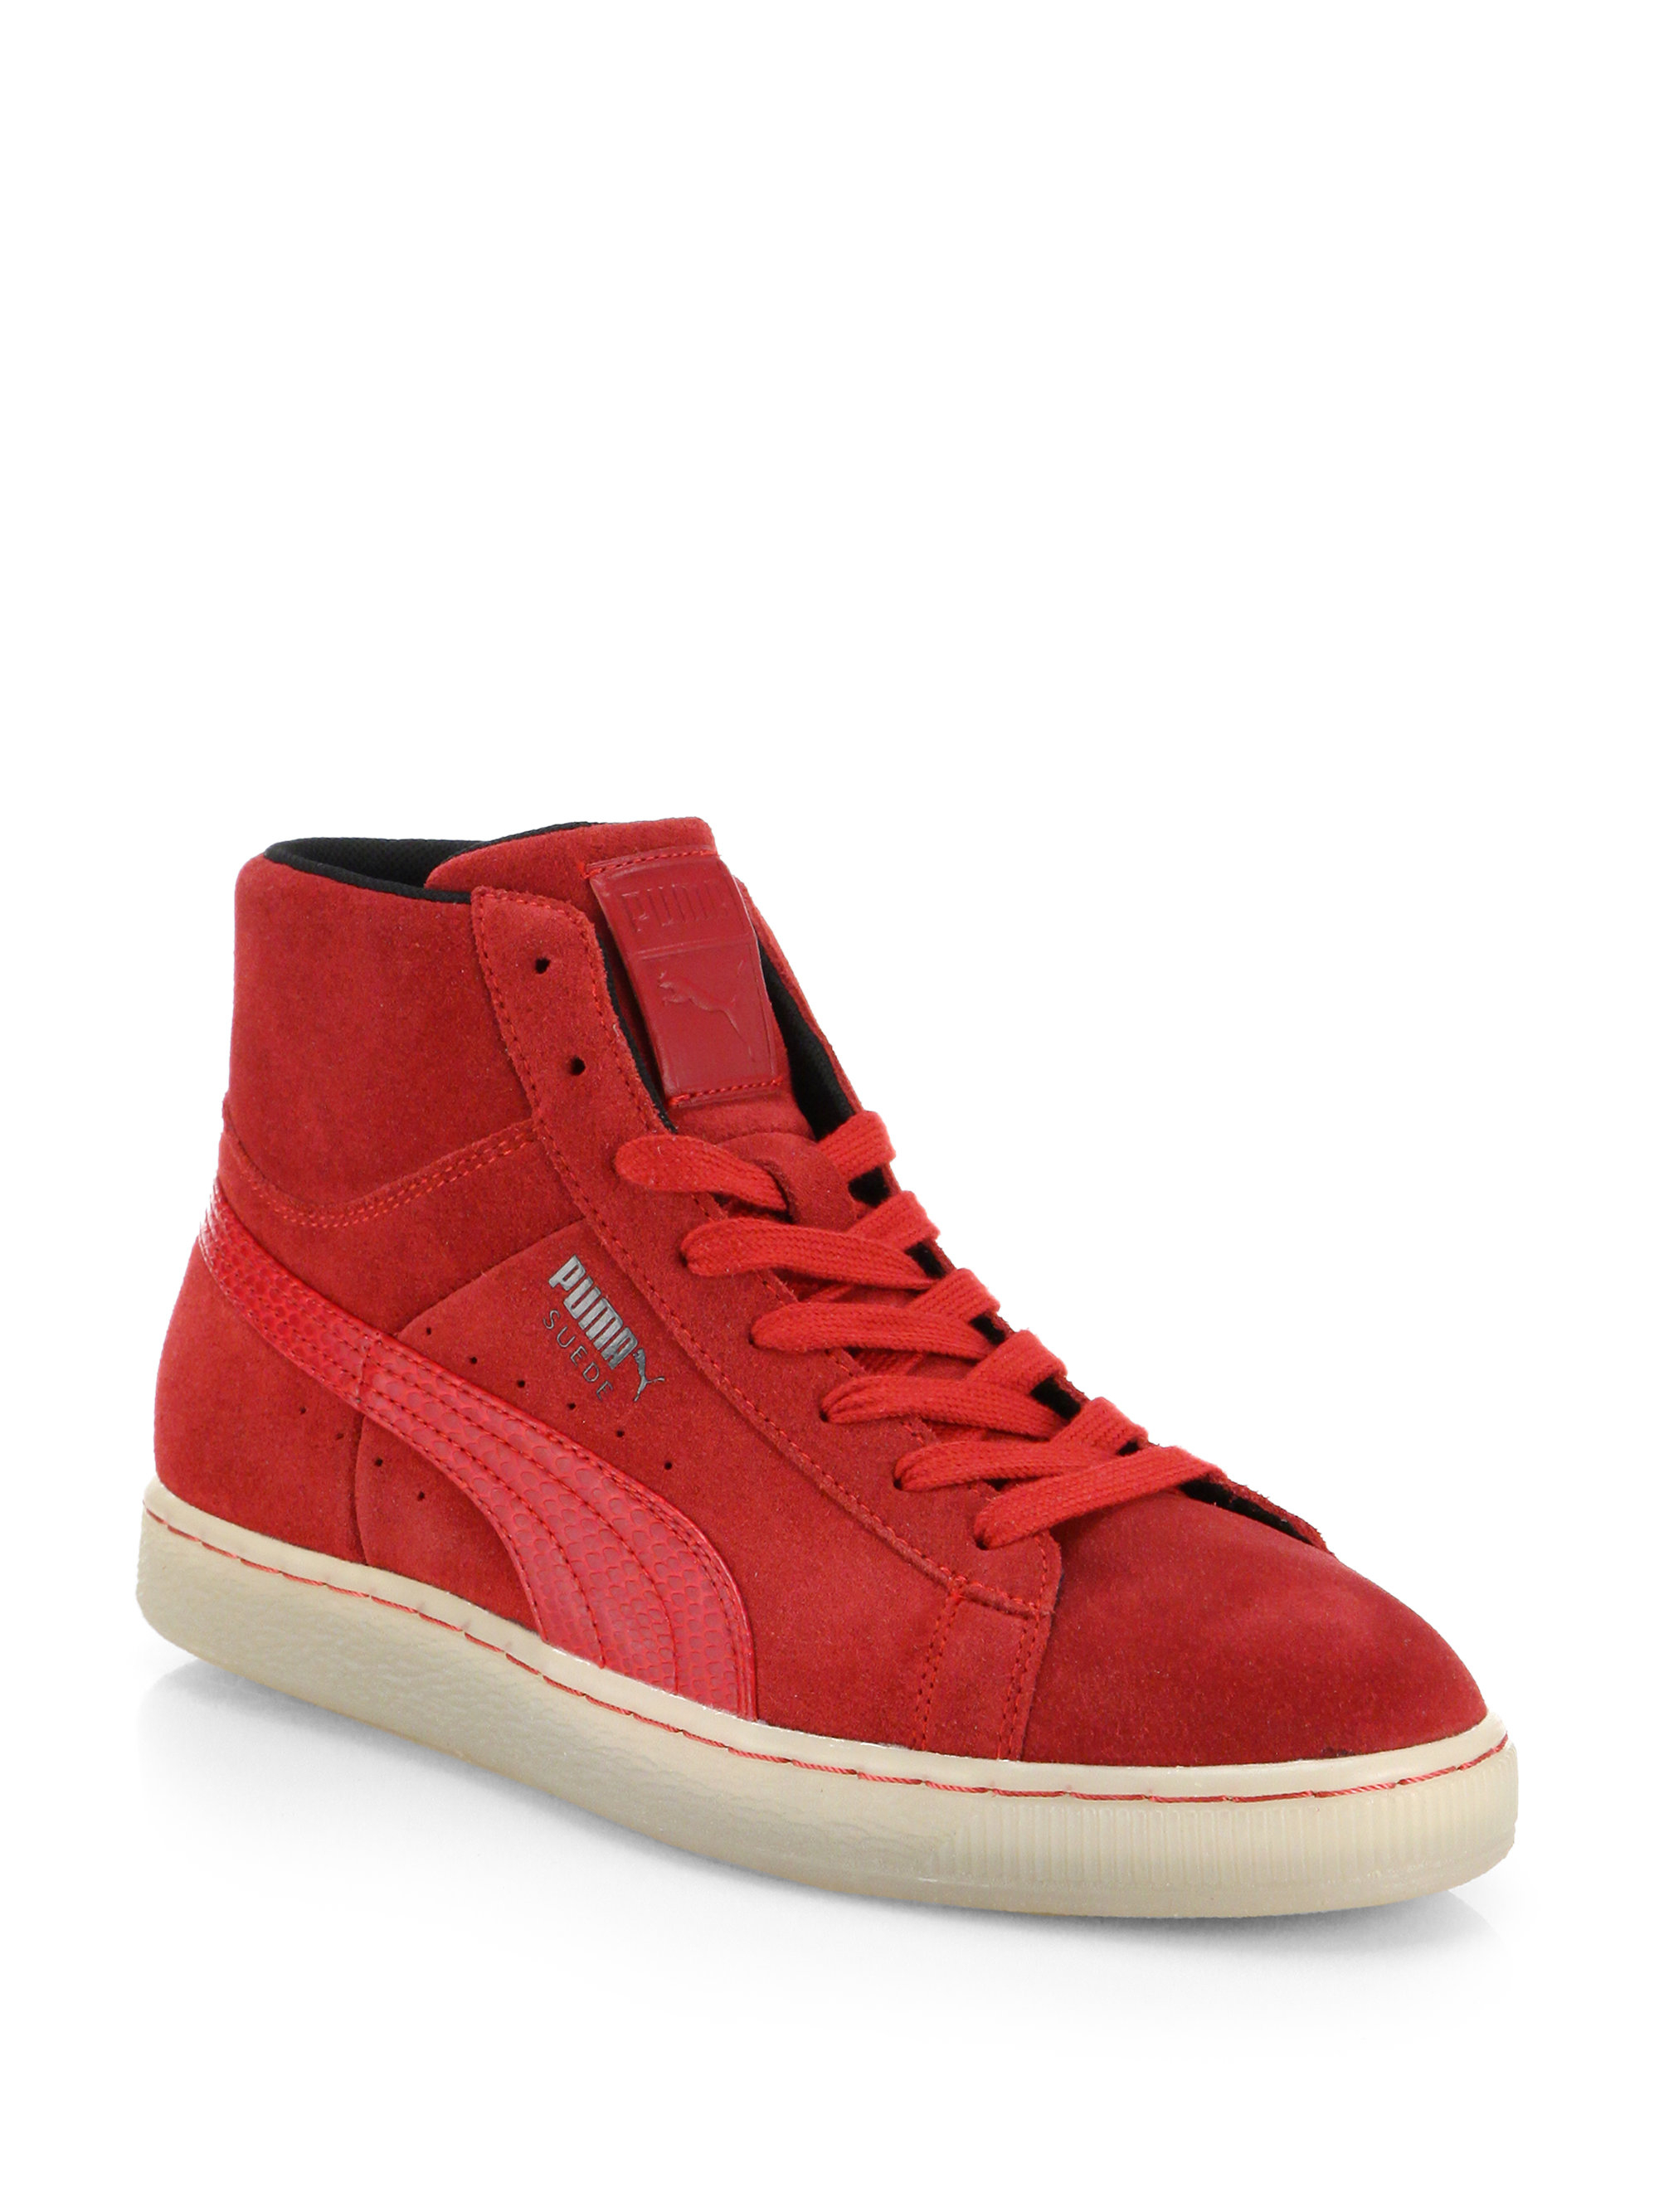 ... promo code for lyst puma classic suede high top sneakers in red for men  06183 af22f c260552e2